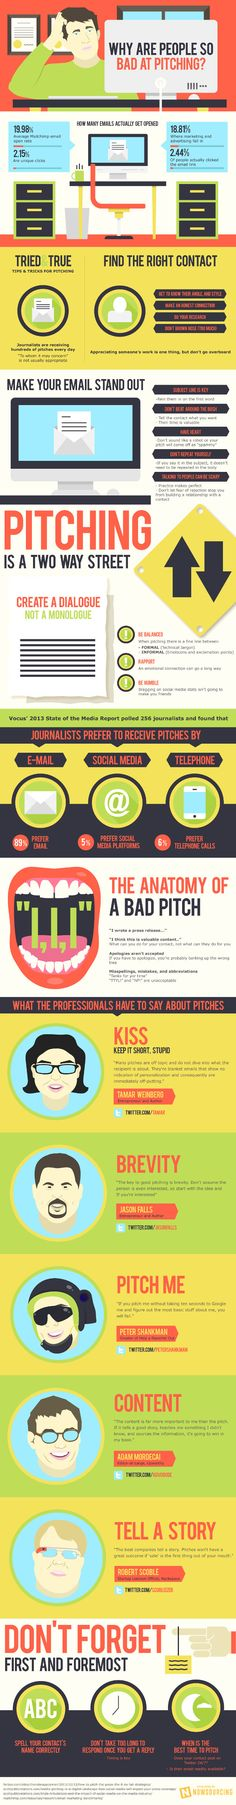 What makes bad pitches so unappealing | from PR Daily - brilliant infographic on pitching media. Public relations magic.